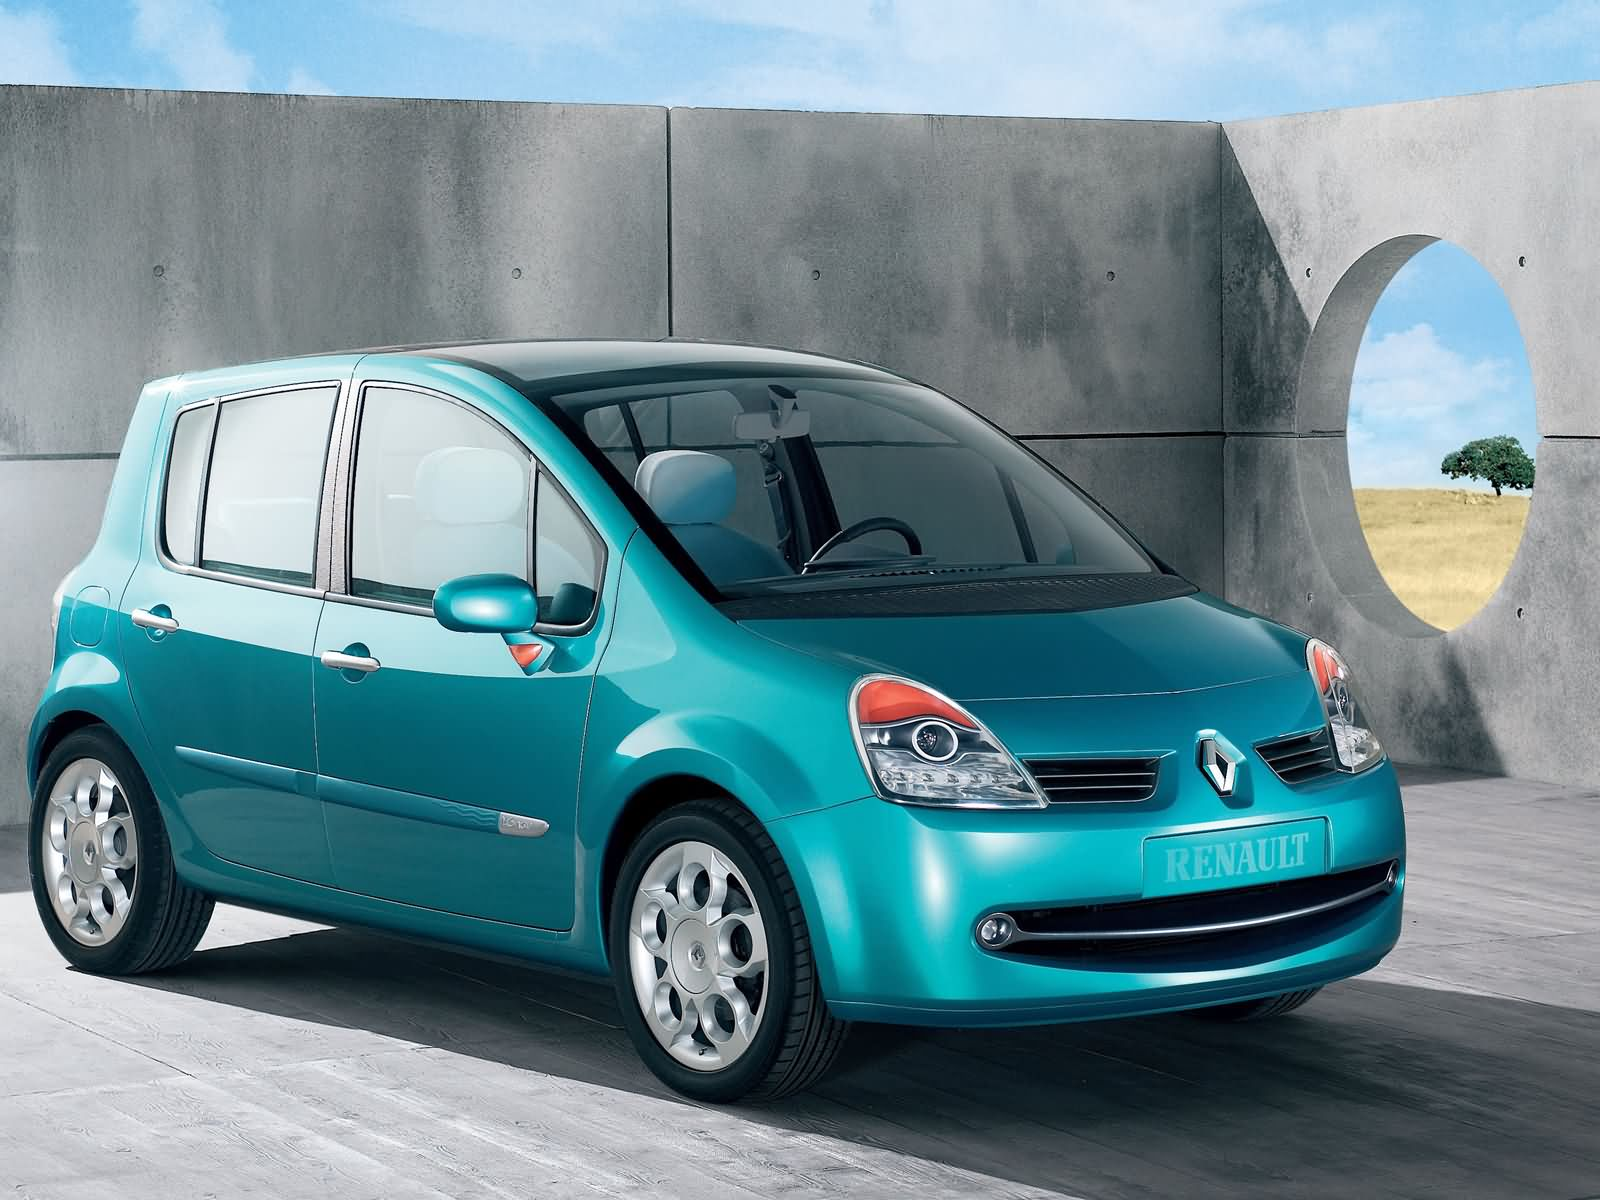 renault modus photos photogallery with 9 pics. Black Bedroom Furniture Sets. Home Design Ideas